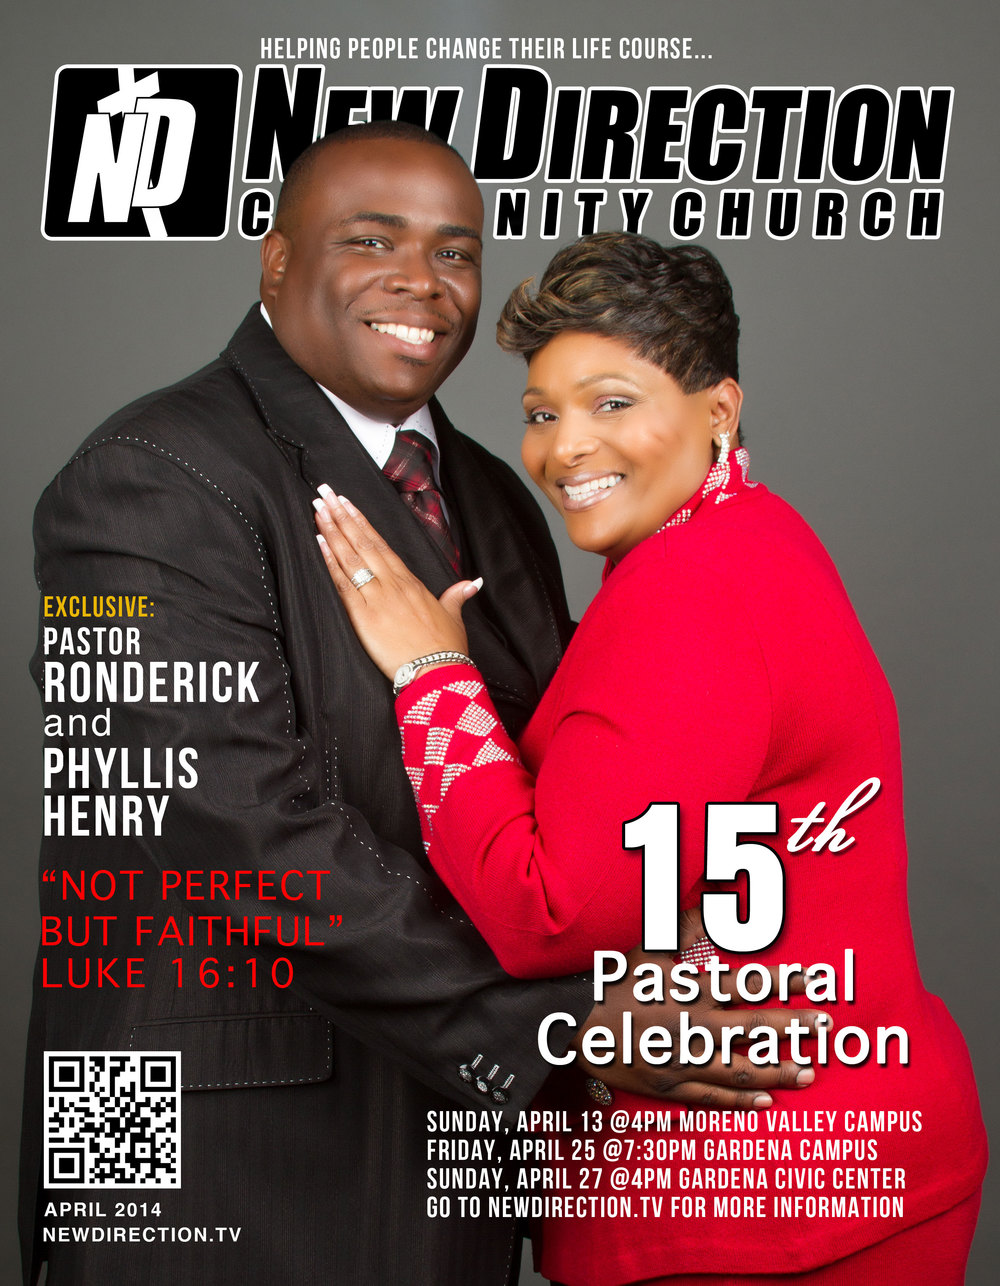 The 15th Pastoral Celebration for Pastor Ronderick and First Lady Phyllis Henry Sunday, April 13 @4pm at our Moreno Valley Campus, La Jolla Elementary 14745 Willow Grove Place, Moreno Valley CA 92555 Friday, April 25 @7:30pm at our Gardena Campus, New Direction Community Church, 13417 S. Budlong Ave., Gardena, CA 90247 Sunday, April 27 @4pm at the Gardena Civic Center, 1700 West 162nd Street, Gardena, CA 90247